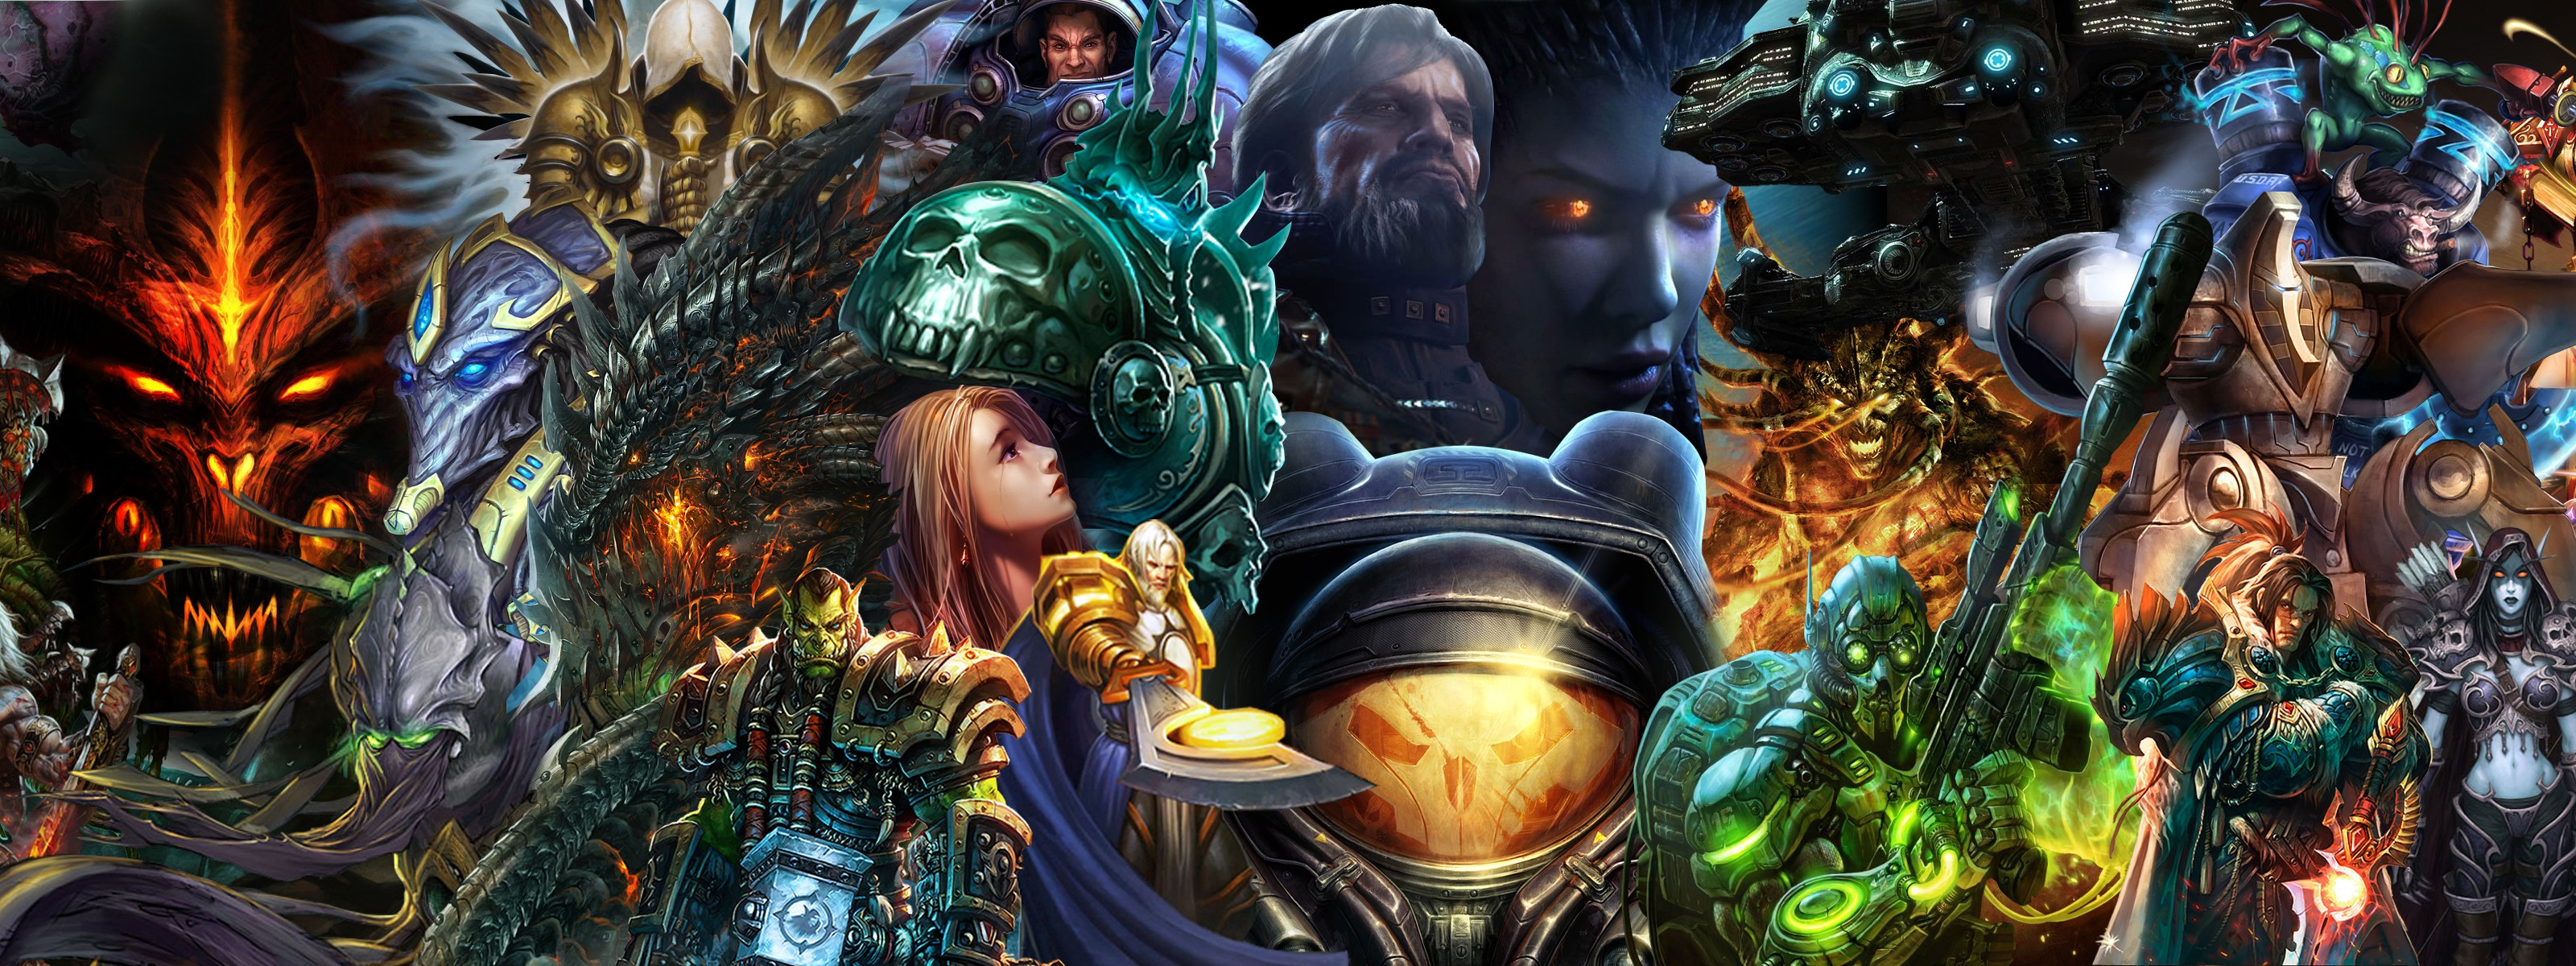 Dual Monitor Wallpaper Overwatch: Blizzard Diablo World Of Warcraft Starcraft Characters